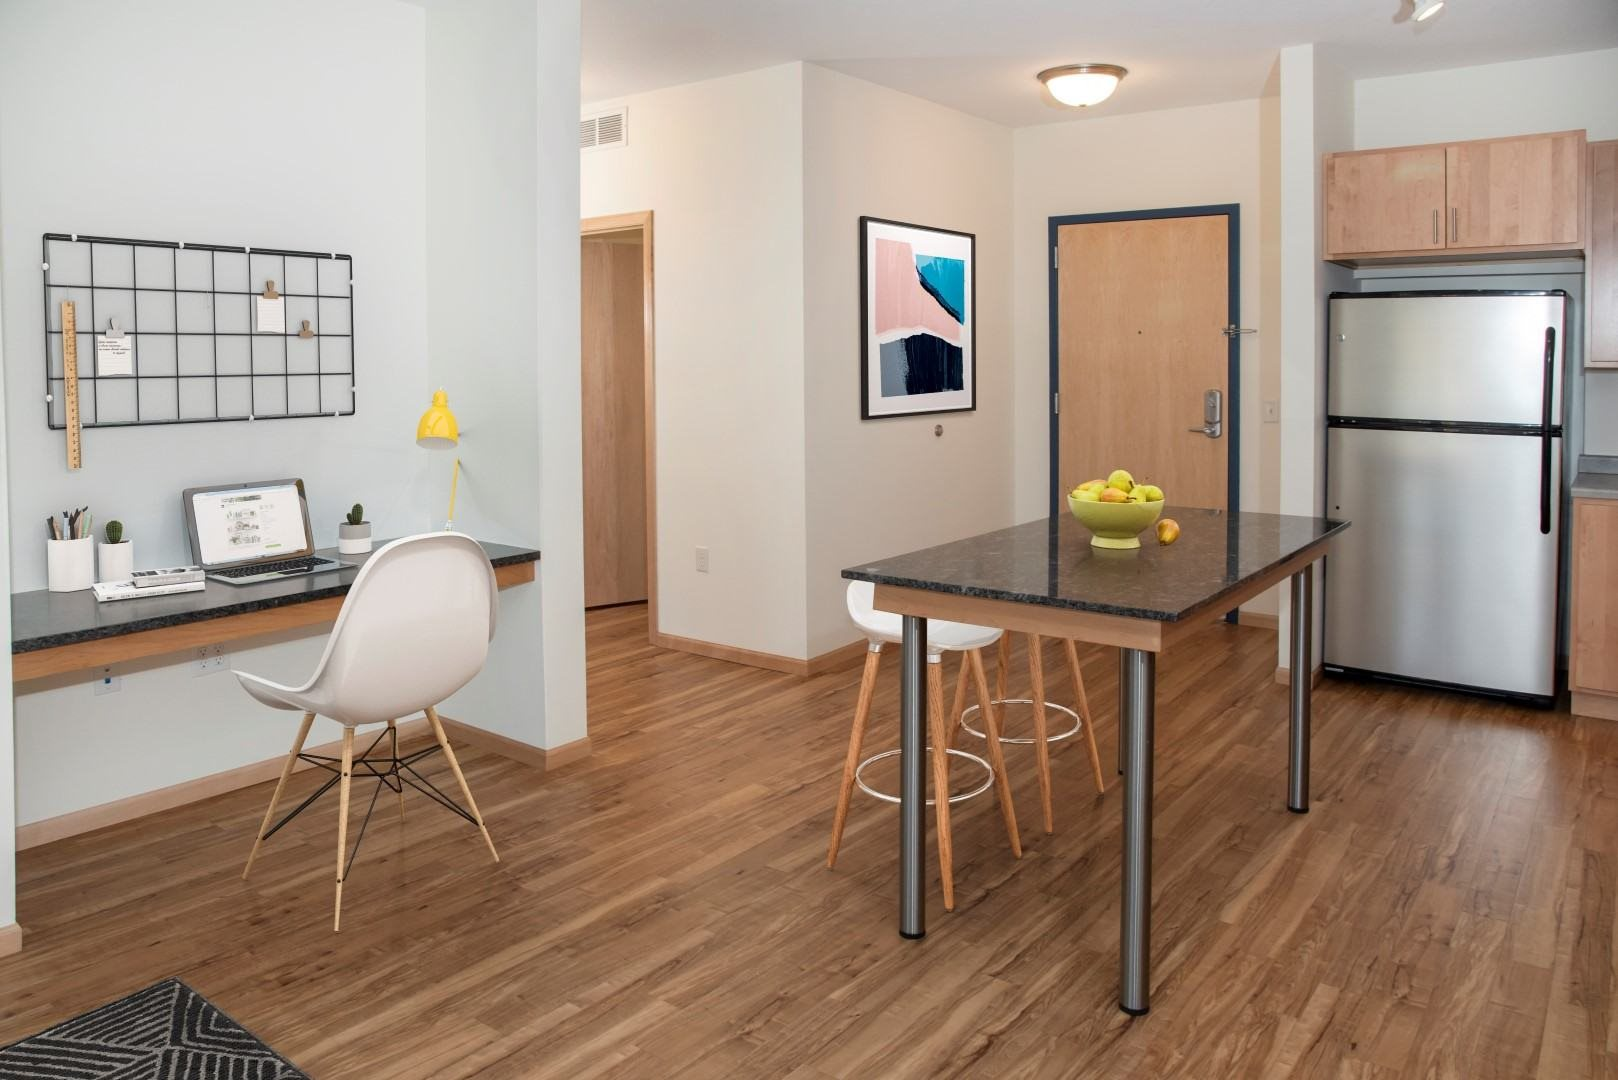 Third North apartments with built-in work from home space